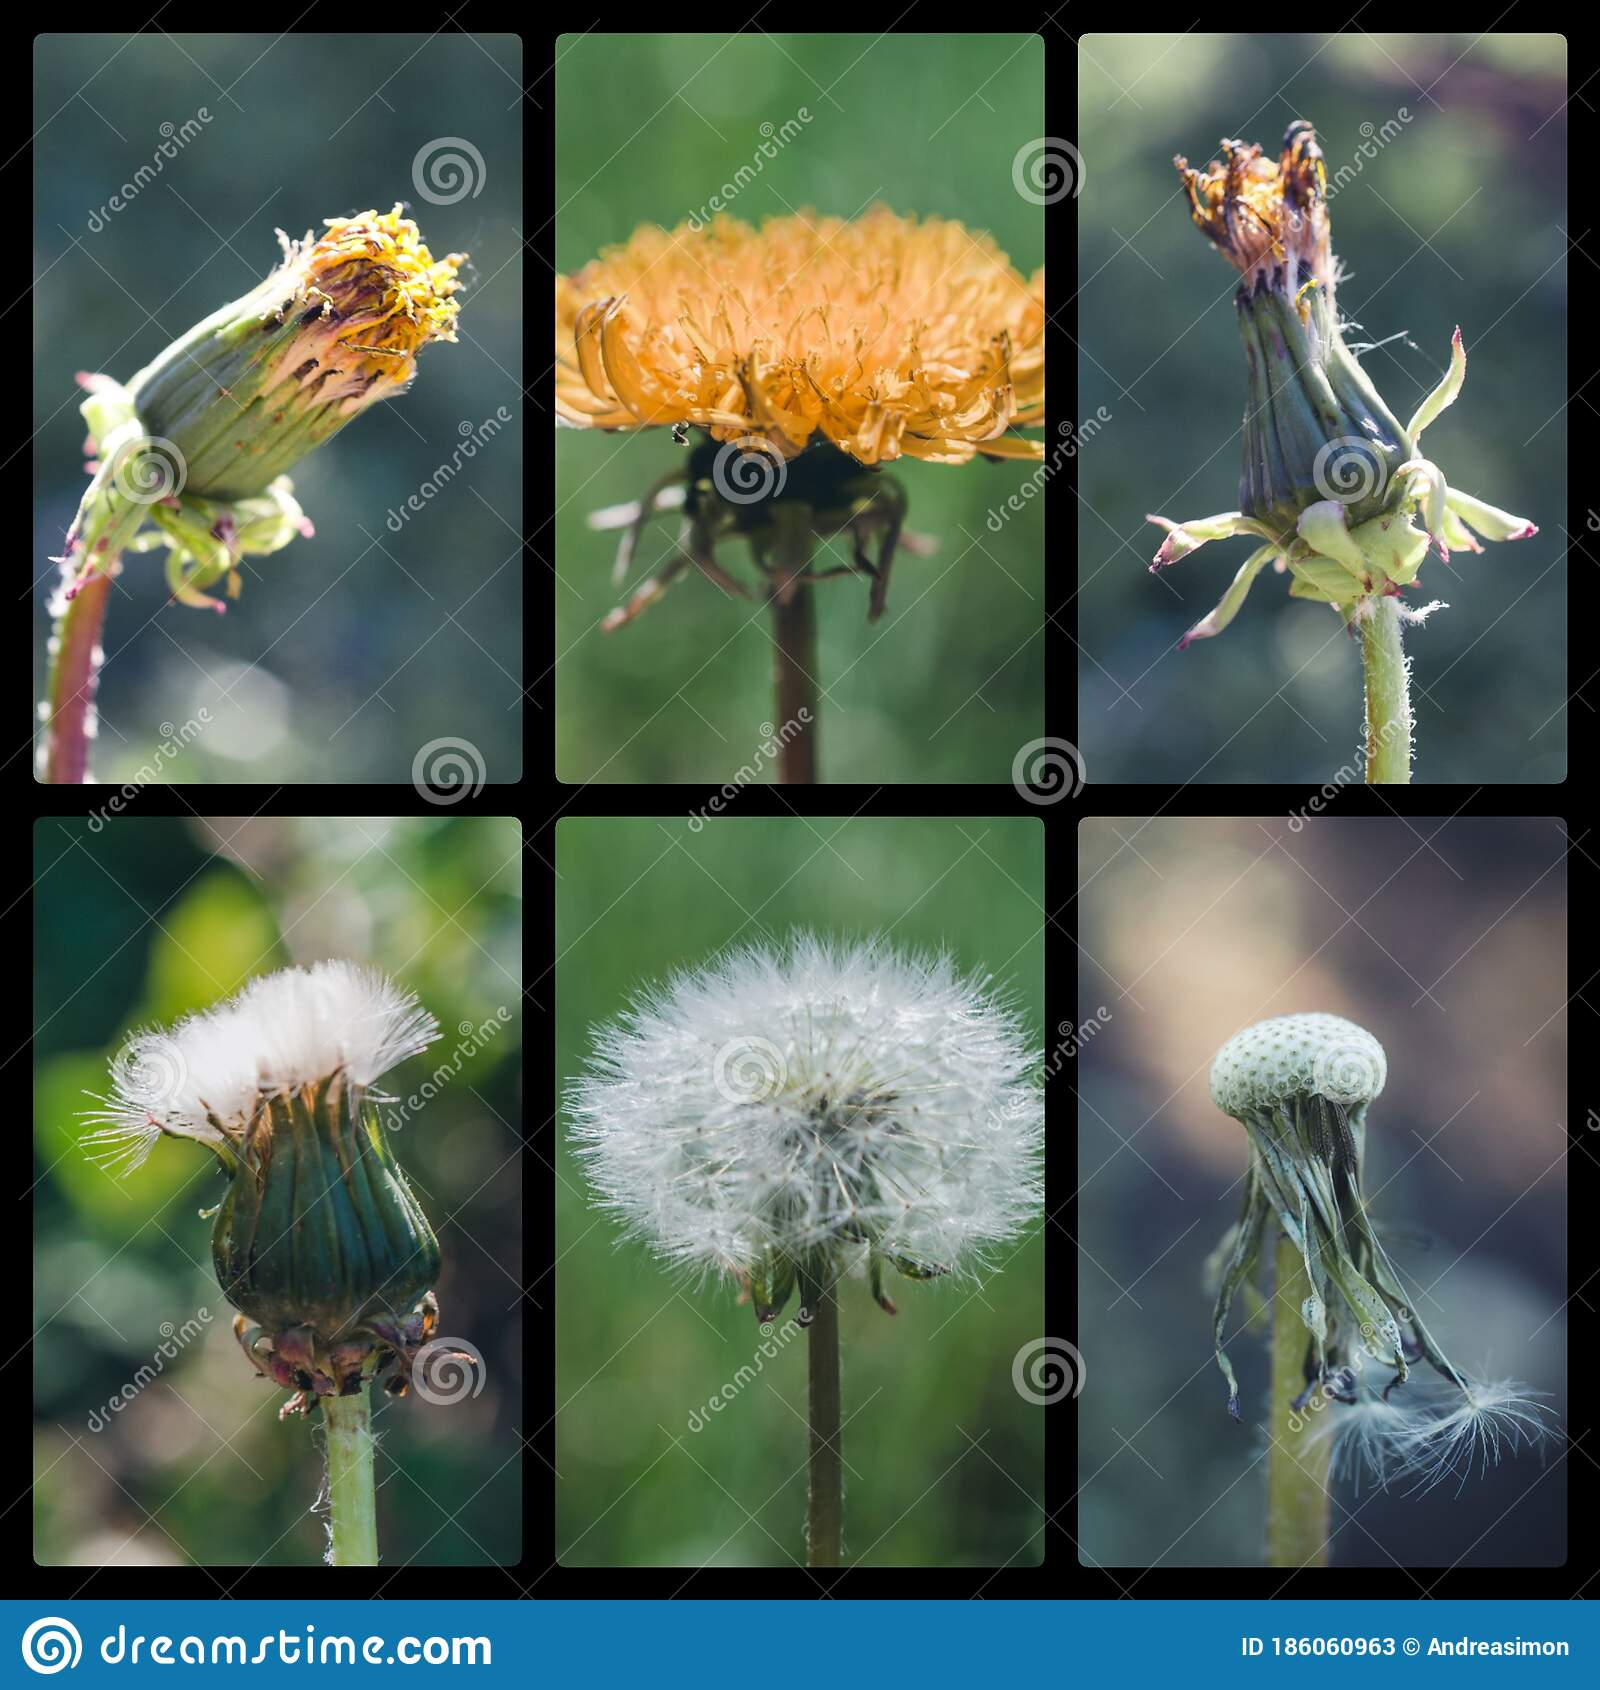 Life Cycle Of A Dandelion Stock Image Image Of Cycle